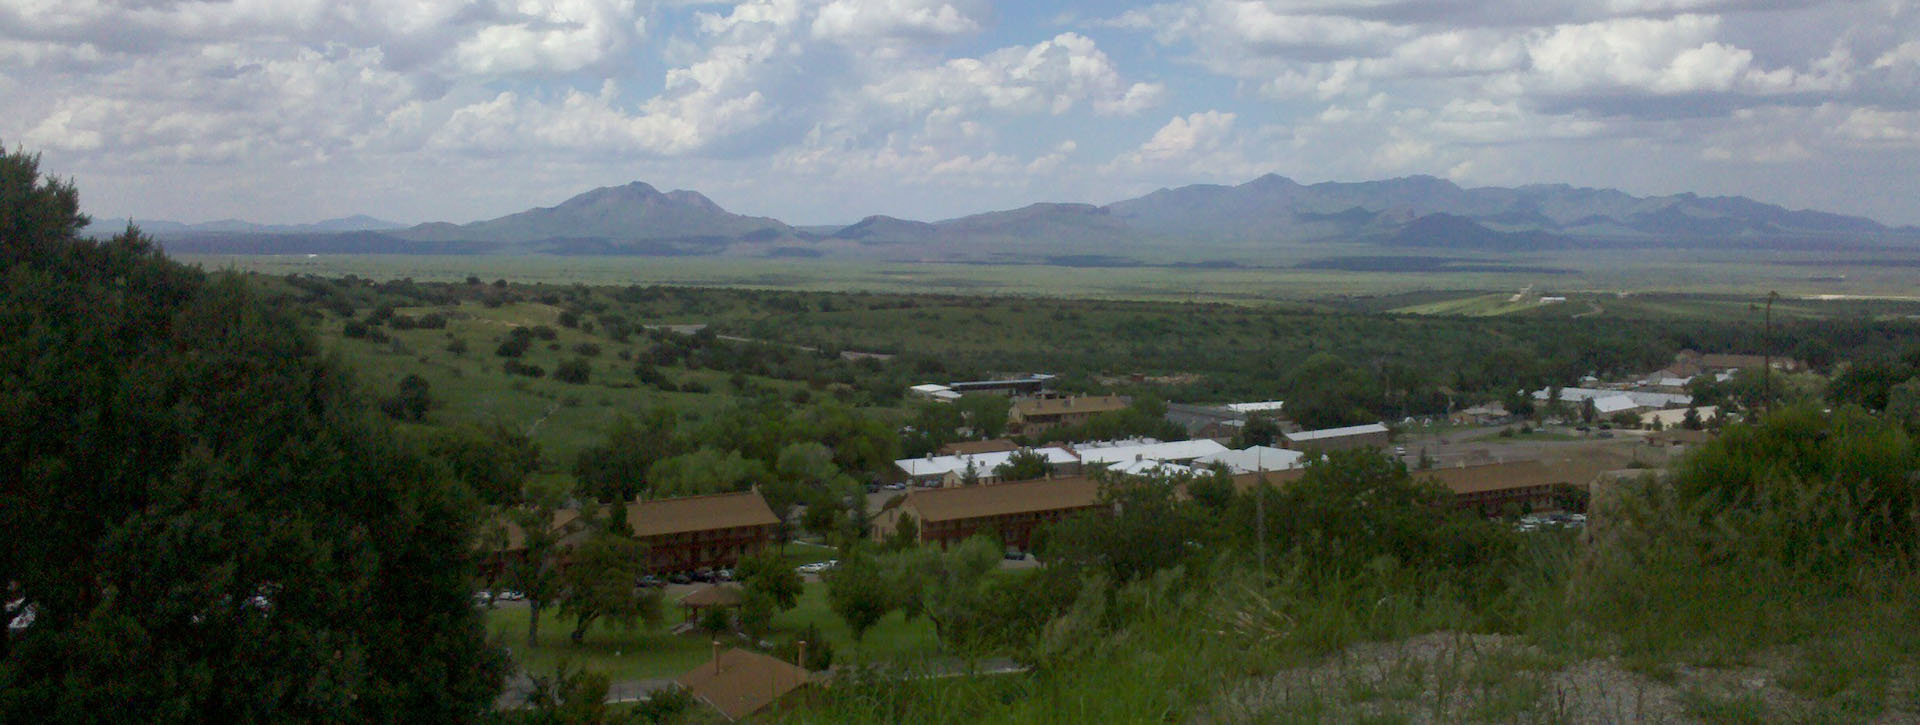 Disturbing Reality About Those Trying to Close Fort Huachuca And Crush Rural Arizona